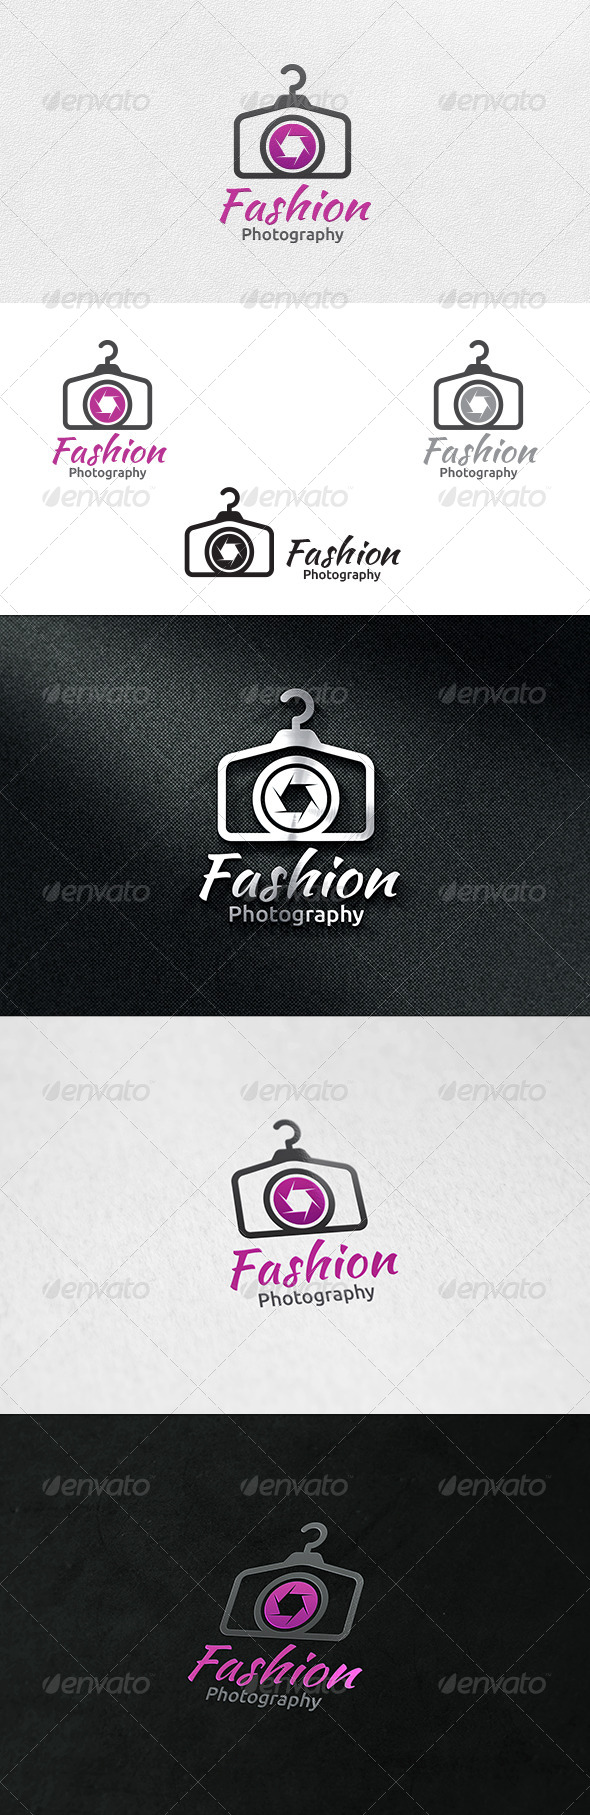 GraphicRiver Fashion Photography Logo Template 6505135